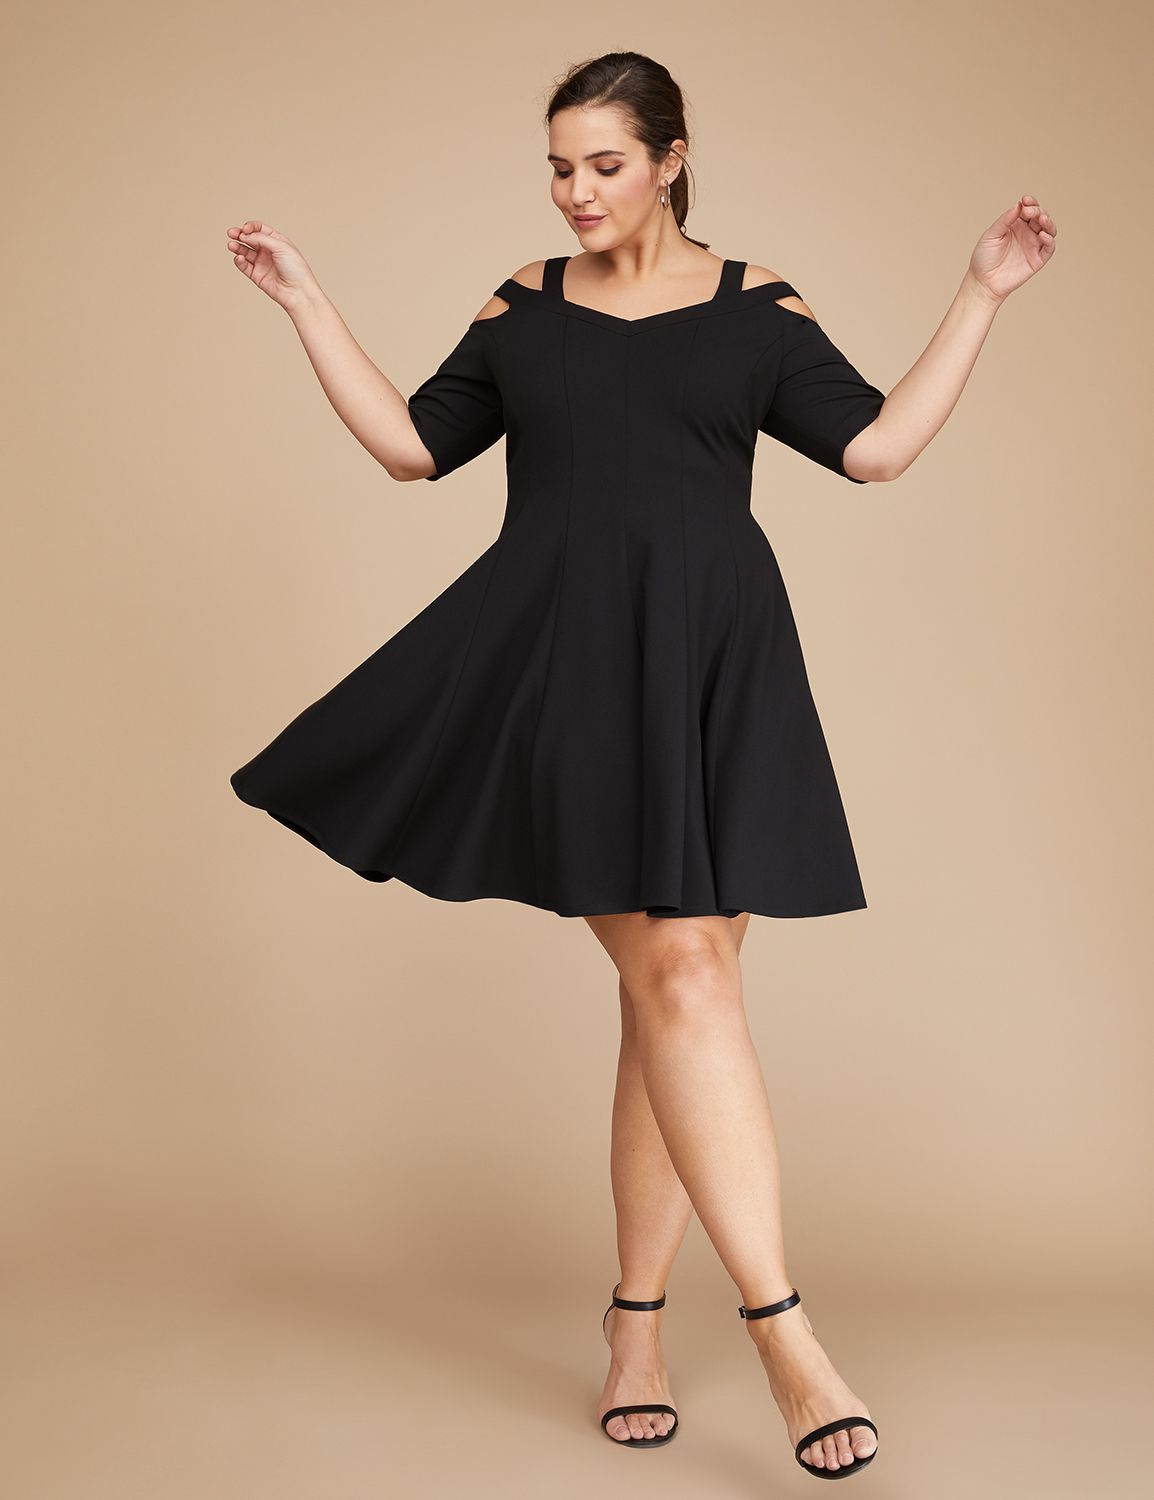 Plus Size Special Occasion Tops_Other dresses_dressesss